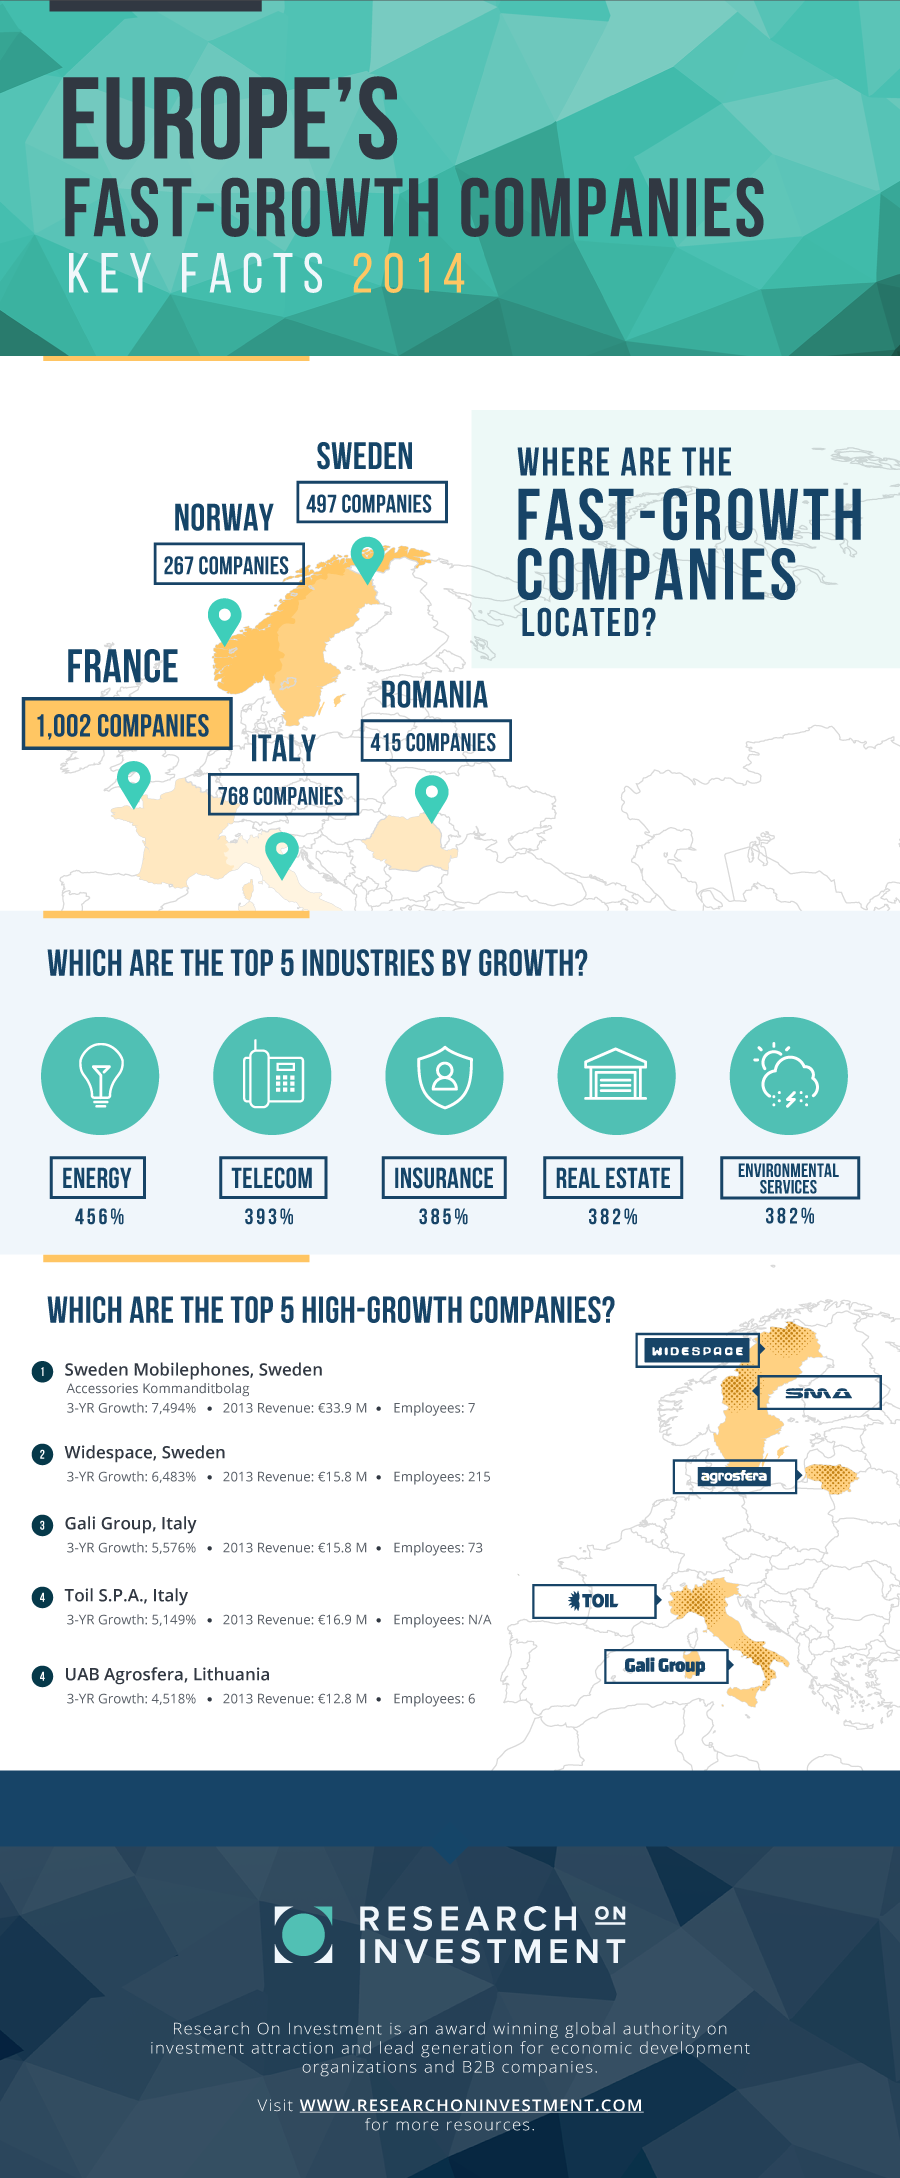 Europe-Fast-Growth-Companies-Keyfacts-2014-infographic